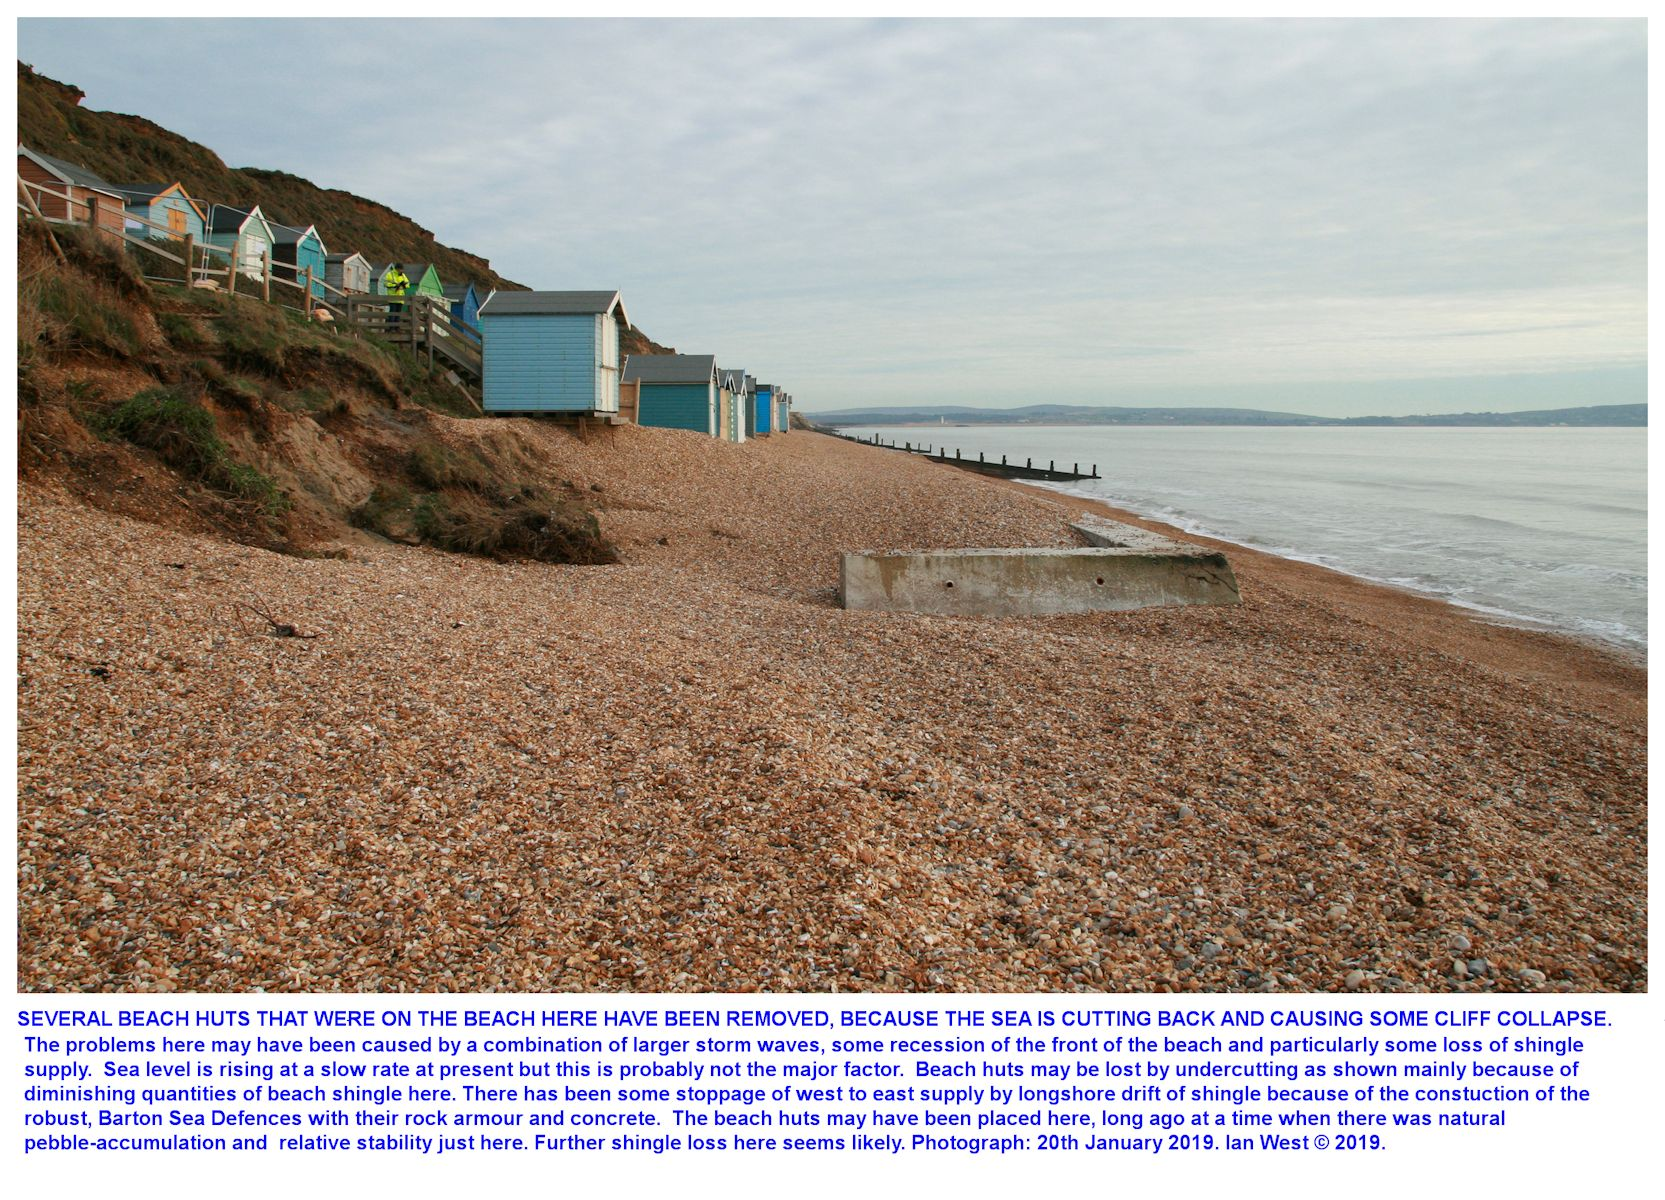 Shortage of beach shingle at the beach at the Milford-Hordle car park is leading to loss or removal of some beach huts here, as seen in January 2020